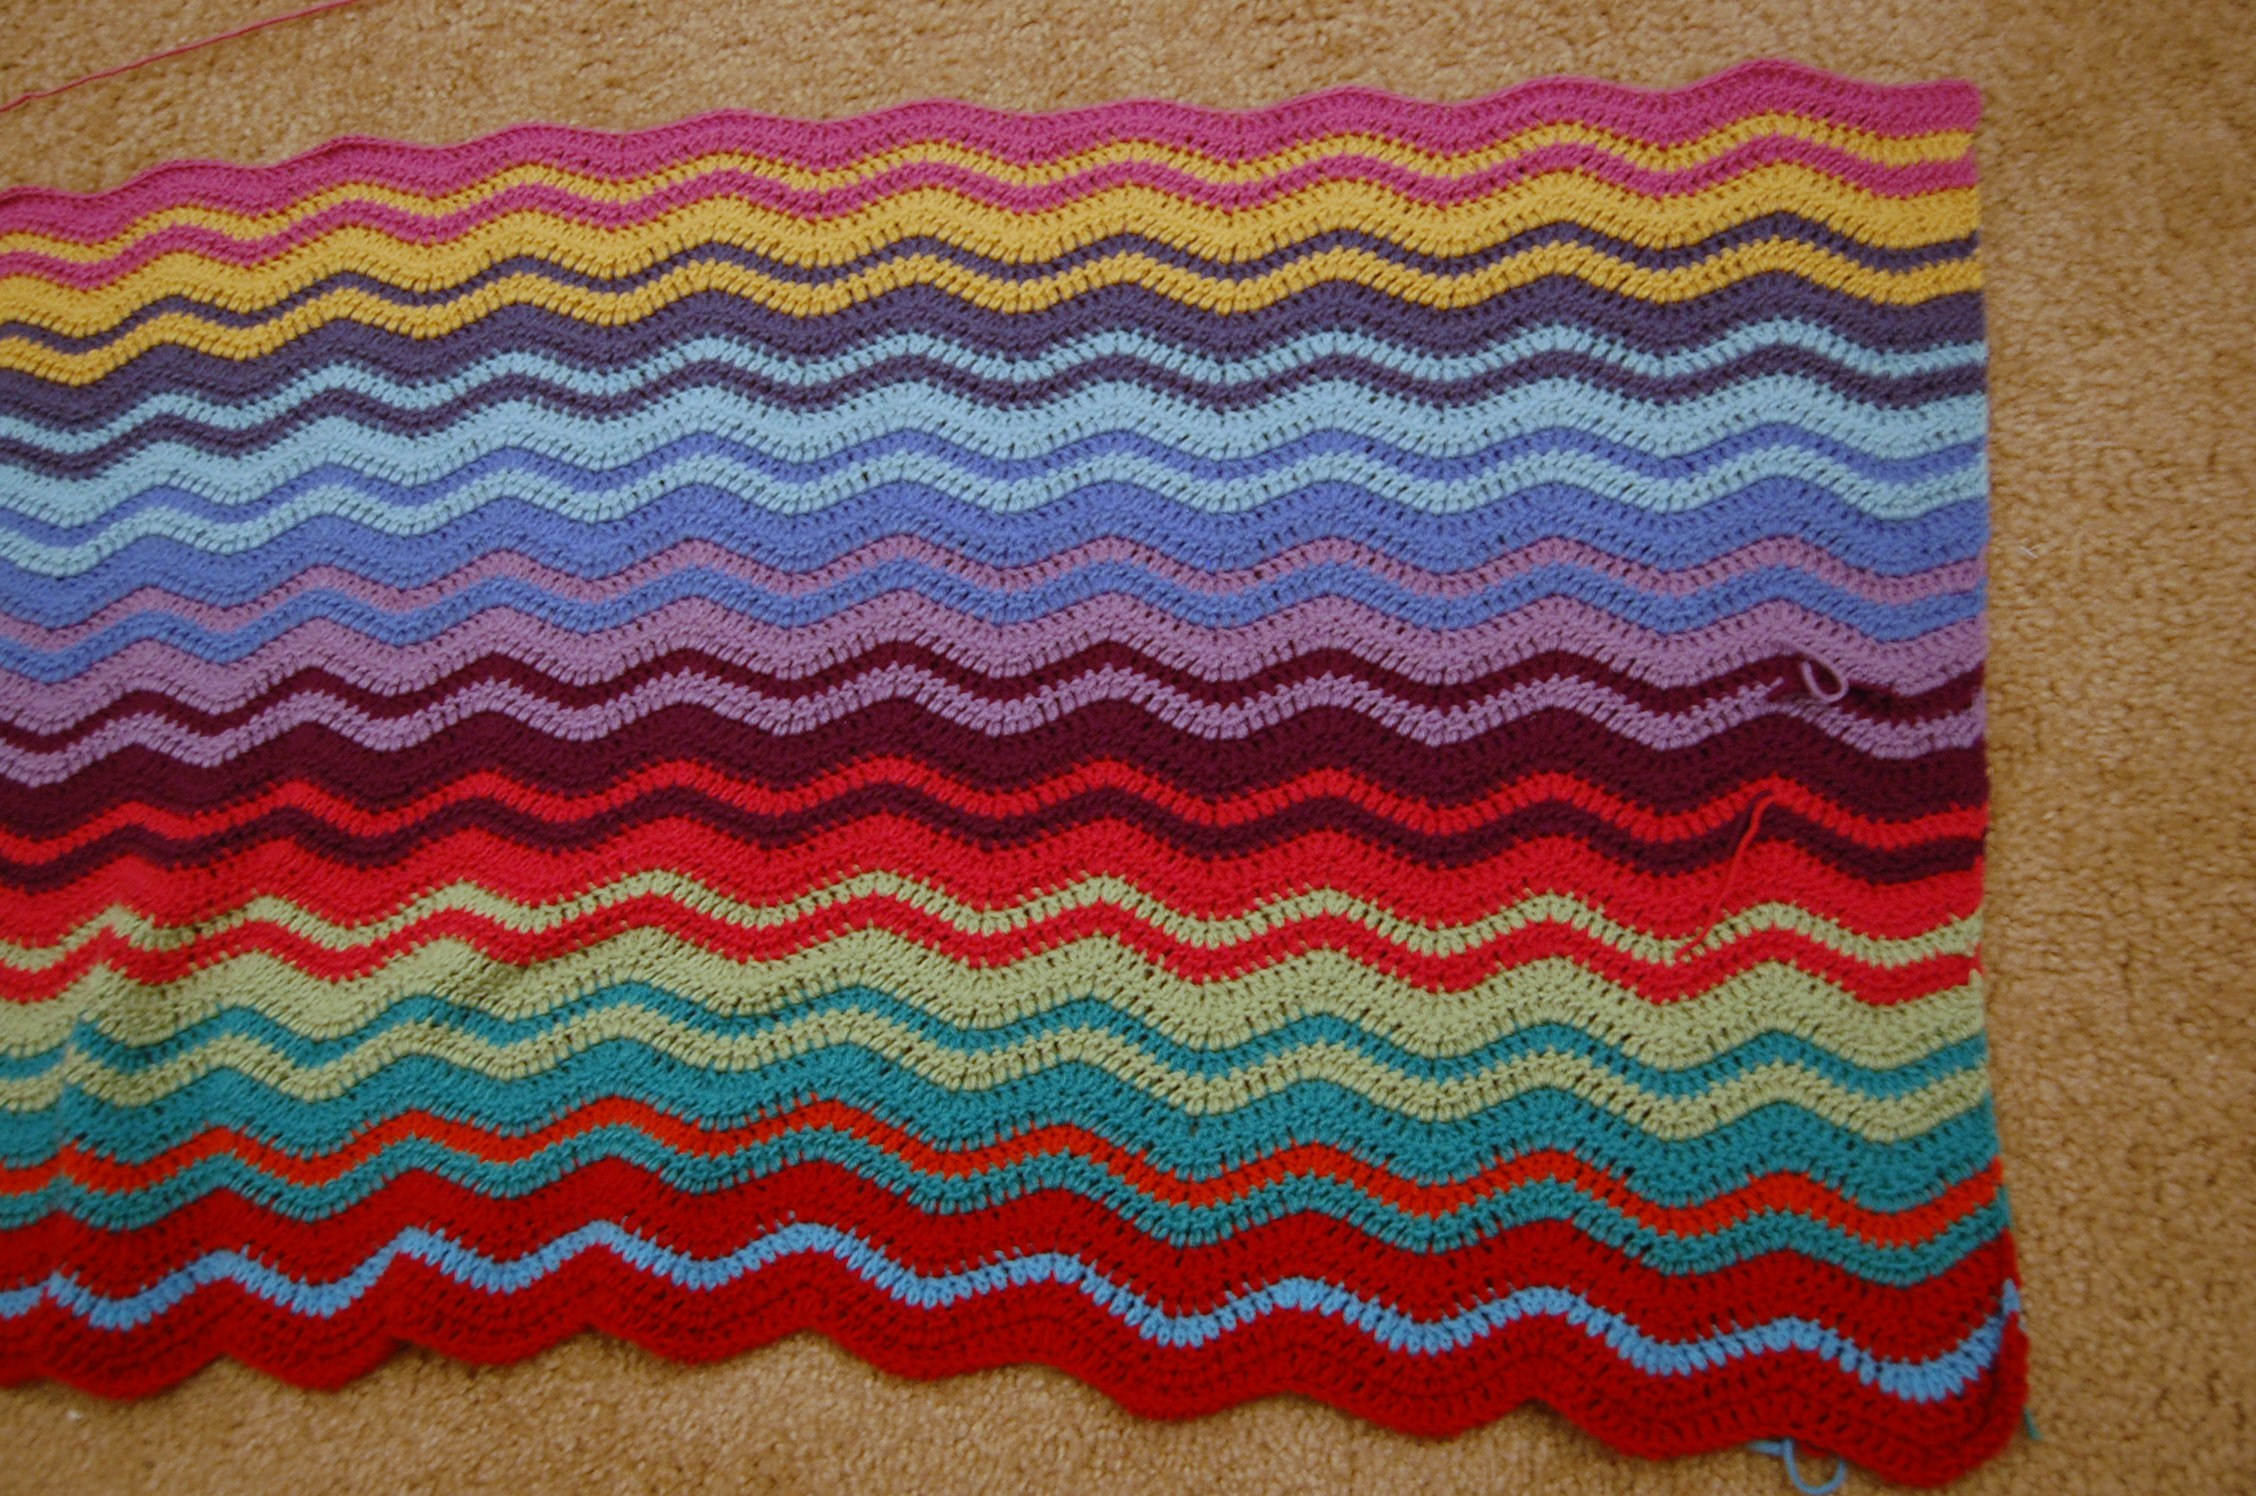 """I'd Like Toe Up With A Creative Name For This Blanket €� Something More  Original Than €�the Ripple Afghan"""" Anyone Have A Suggestion?"""